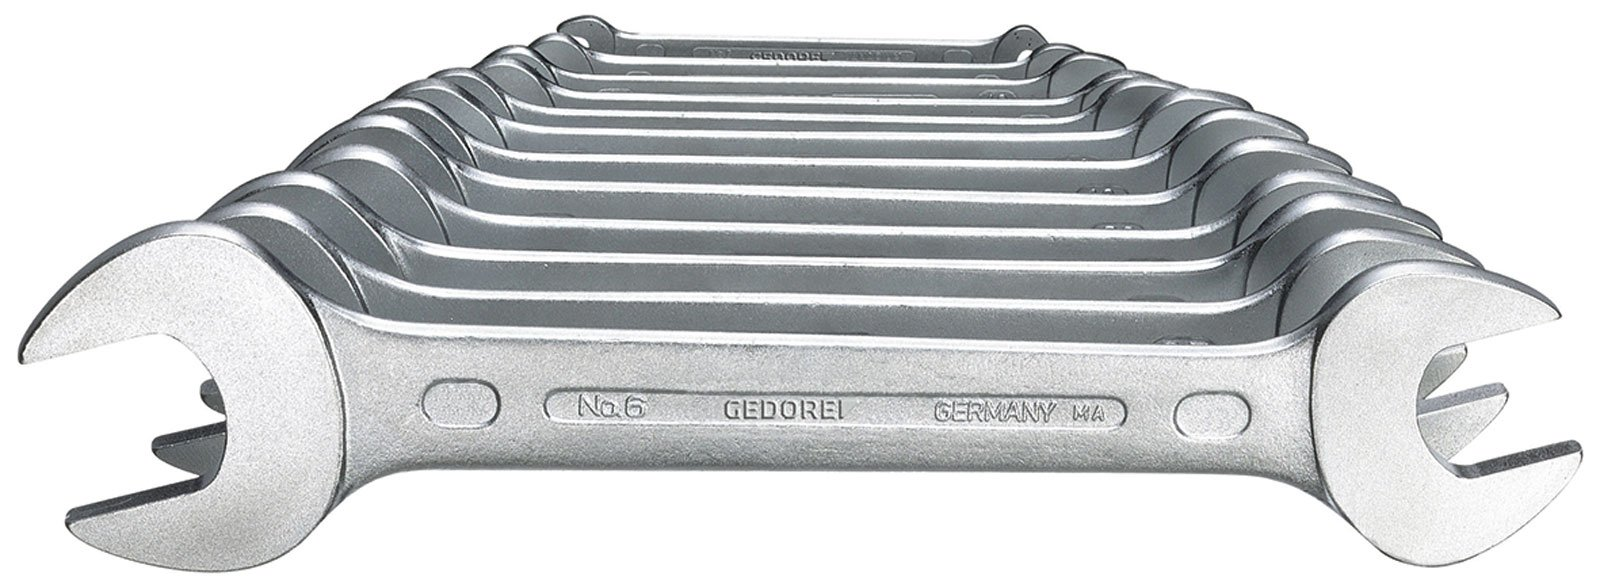 GEDORE 6-122 ISO Double open ended spanner set 12 pcs 6-34 mm by Gedore